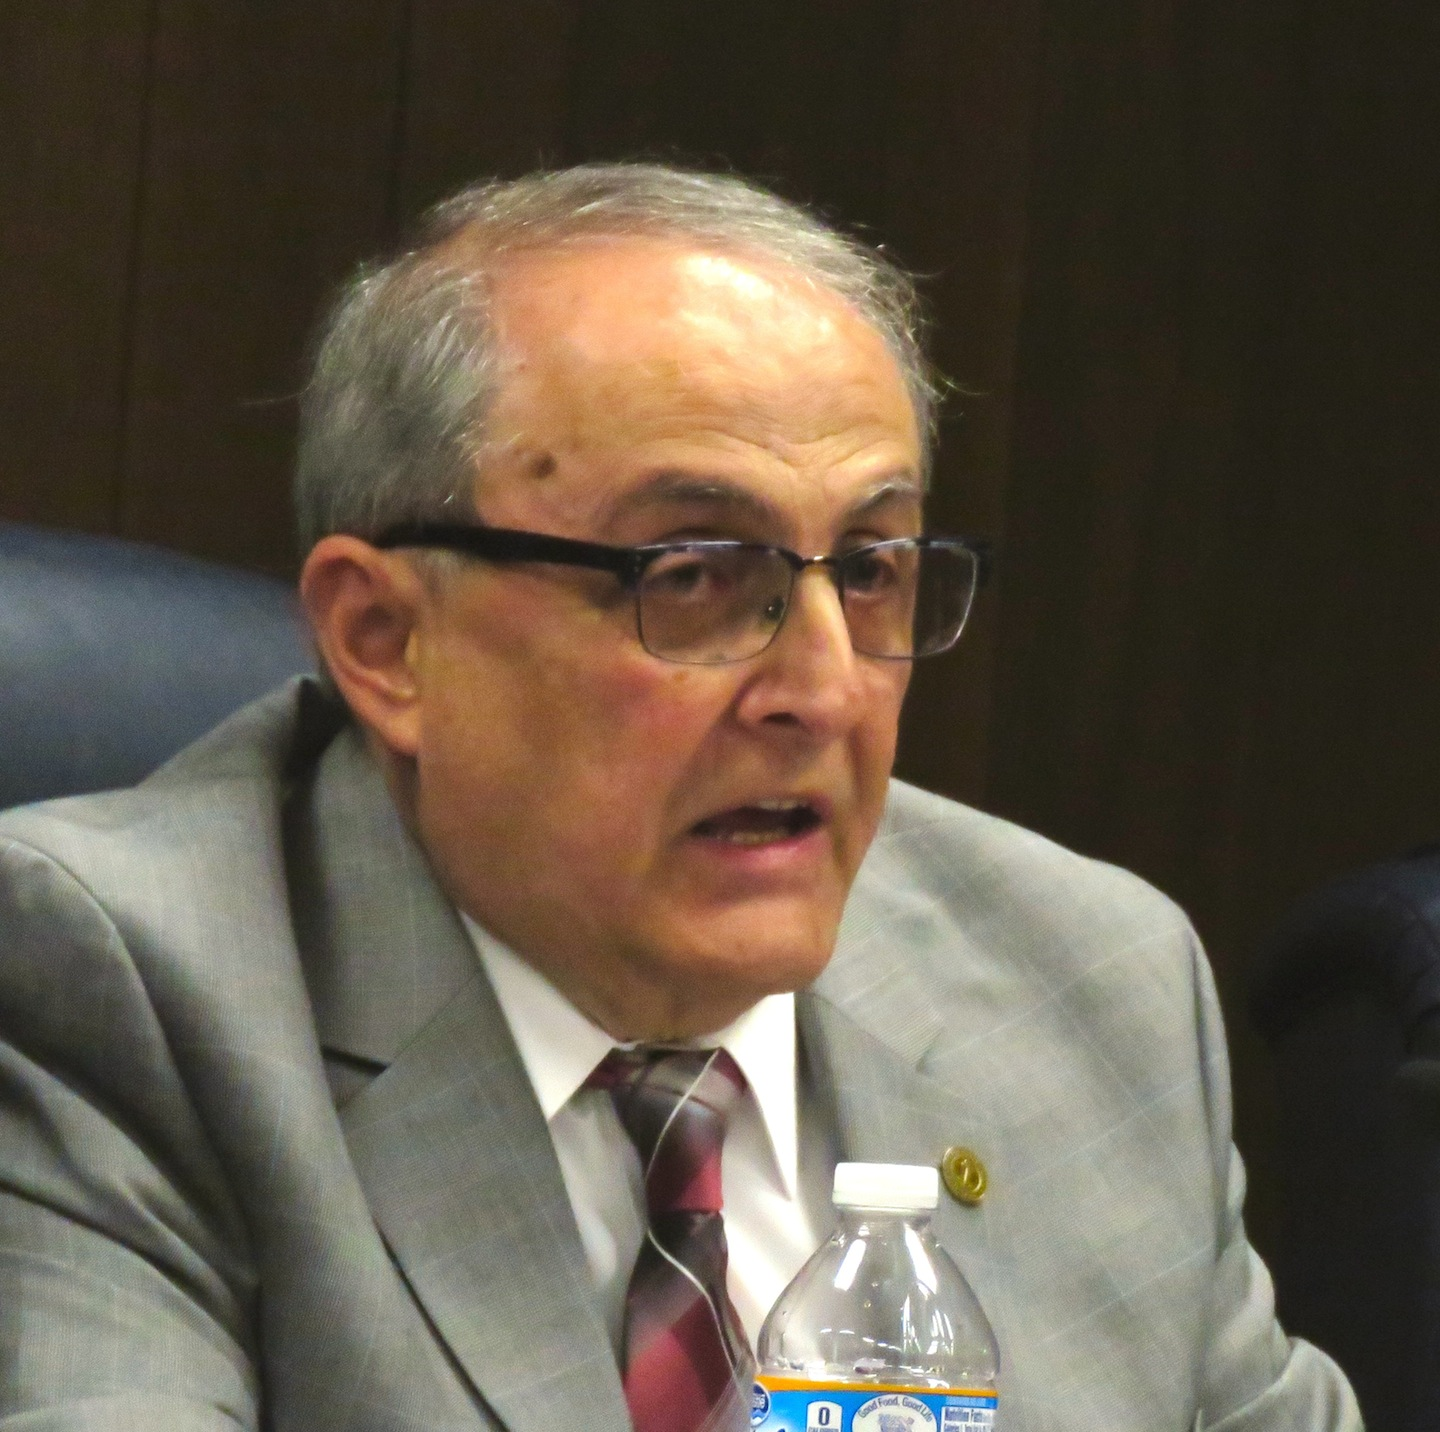 North Tonawanda Mayor Arthur Pappas.